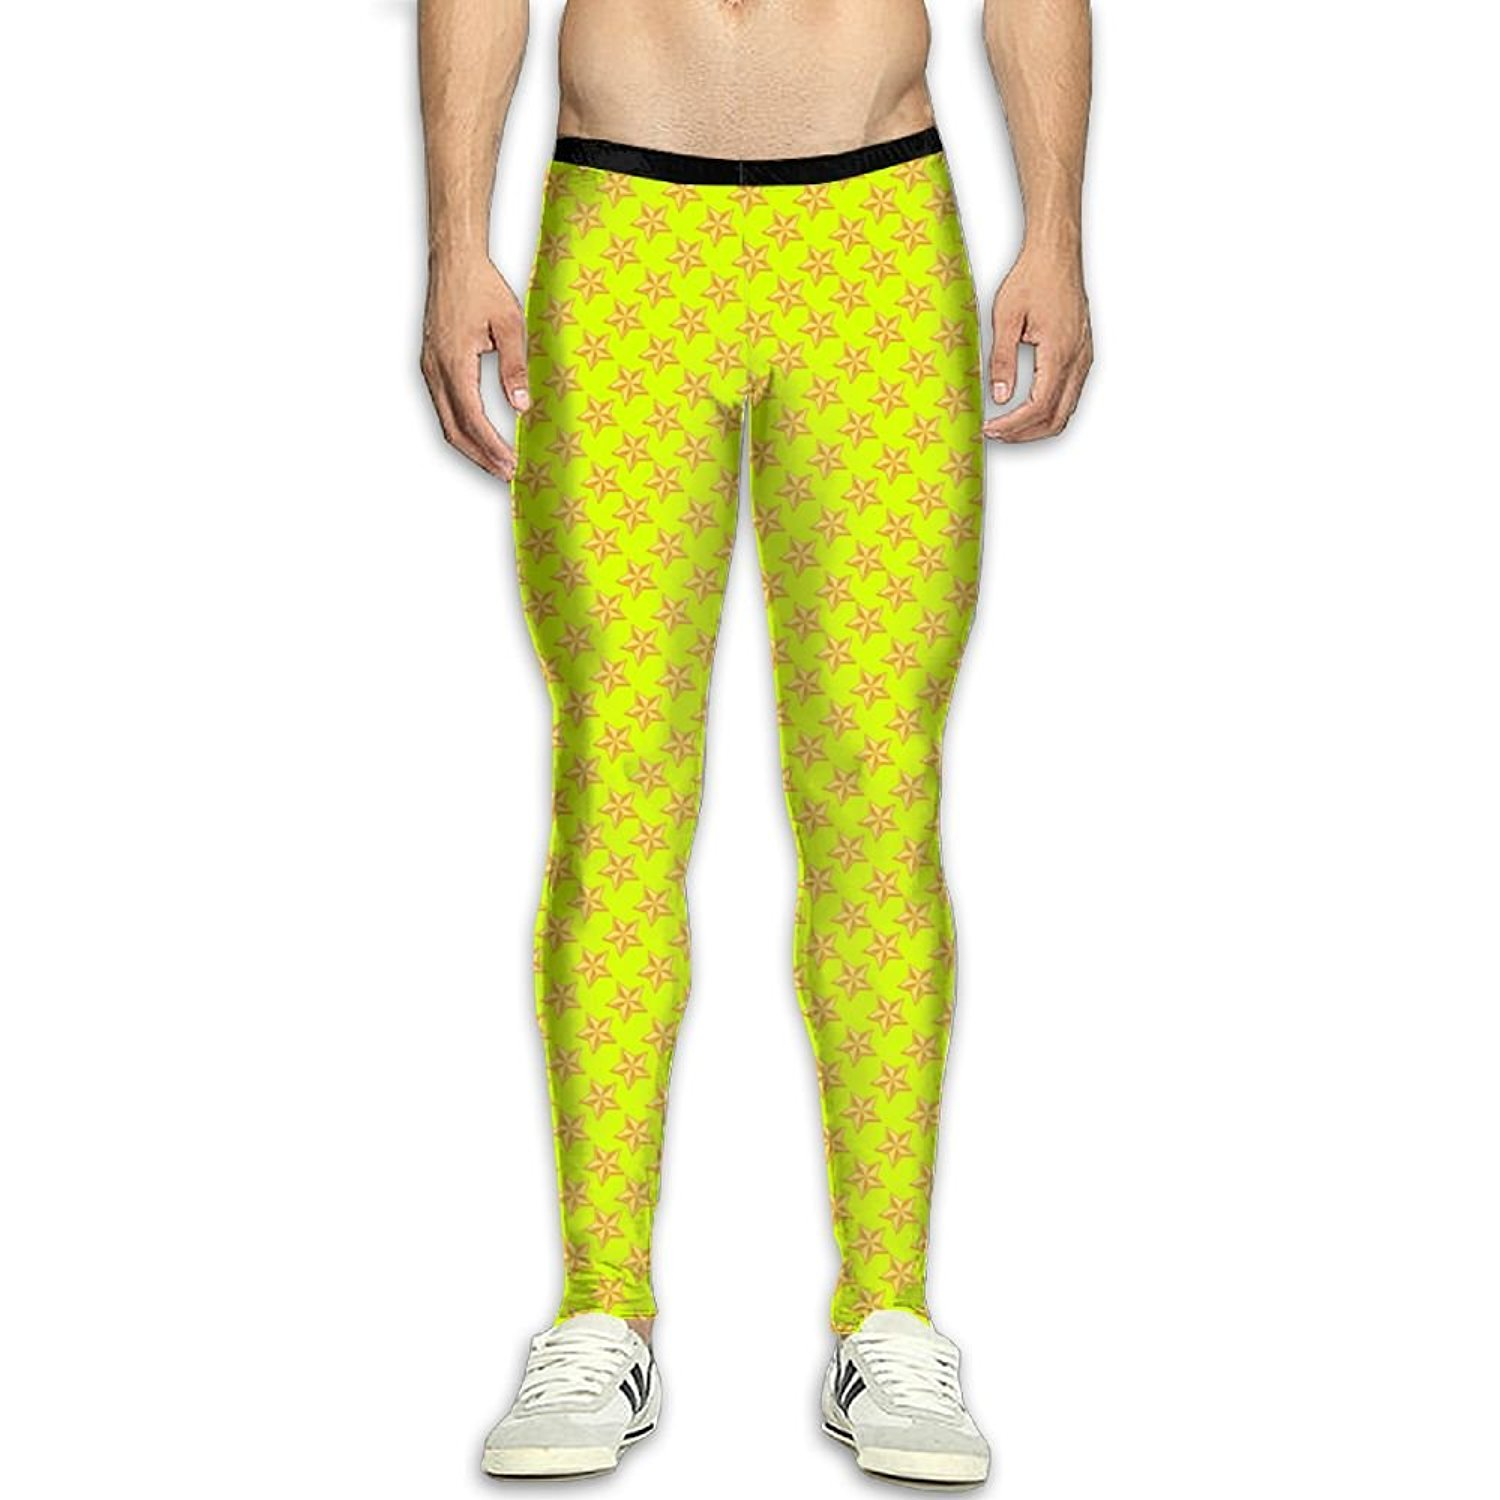 f4730d53ce3be Get Quotations · Virgo Penguin Animal Warmth Compression Pants/Running  Tights Running Tights Men Women's Winter